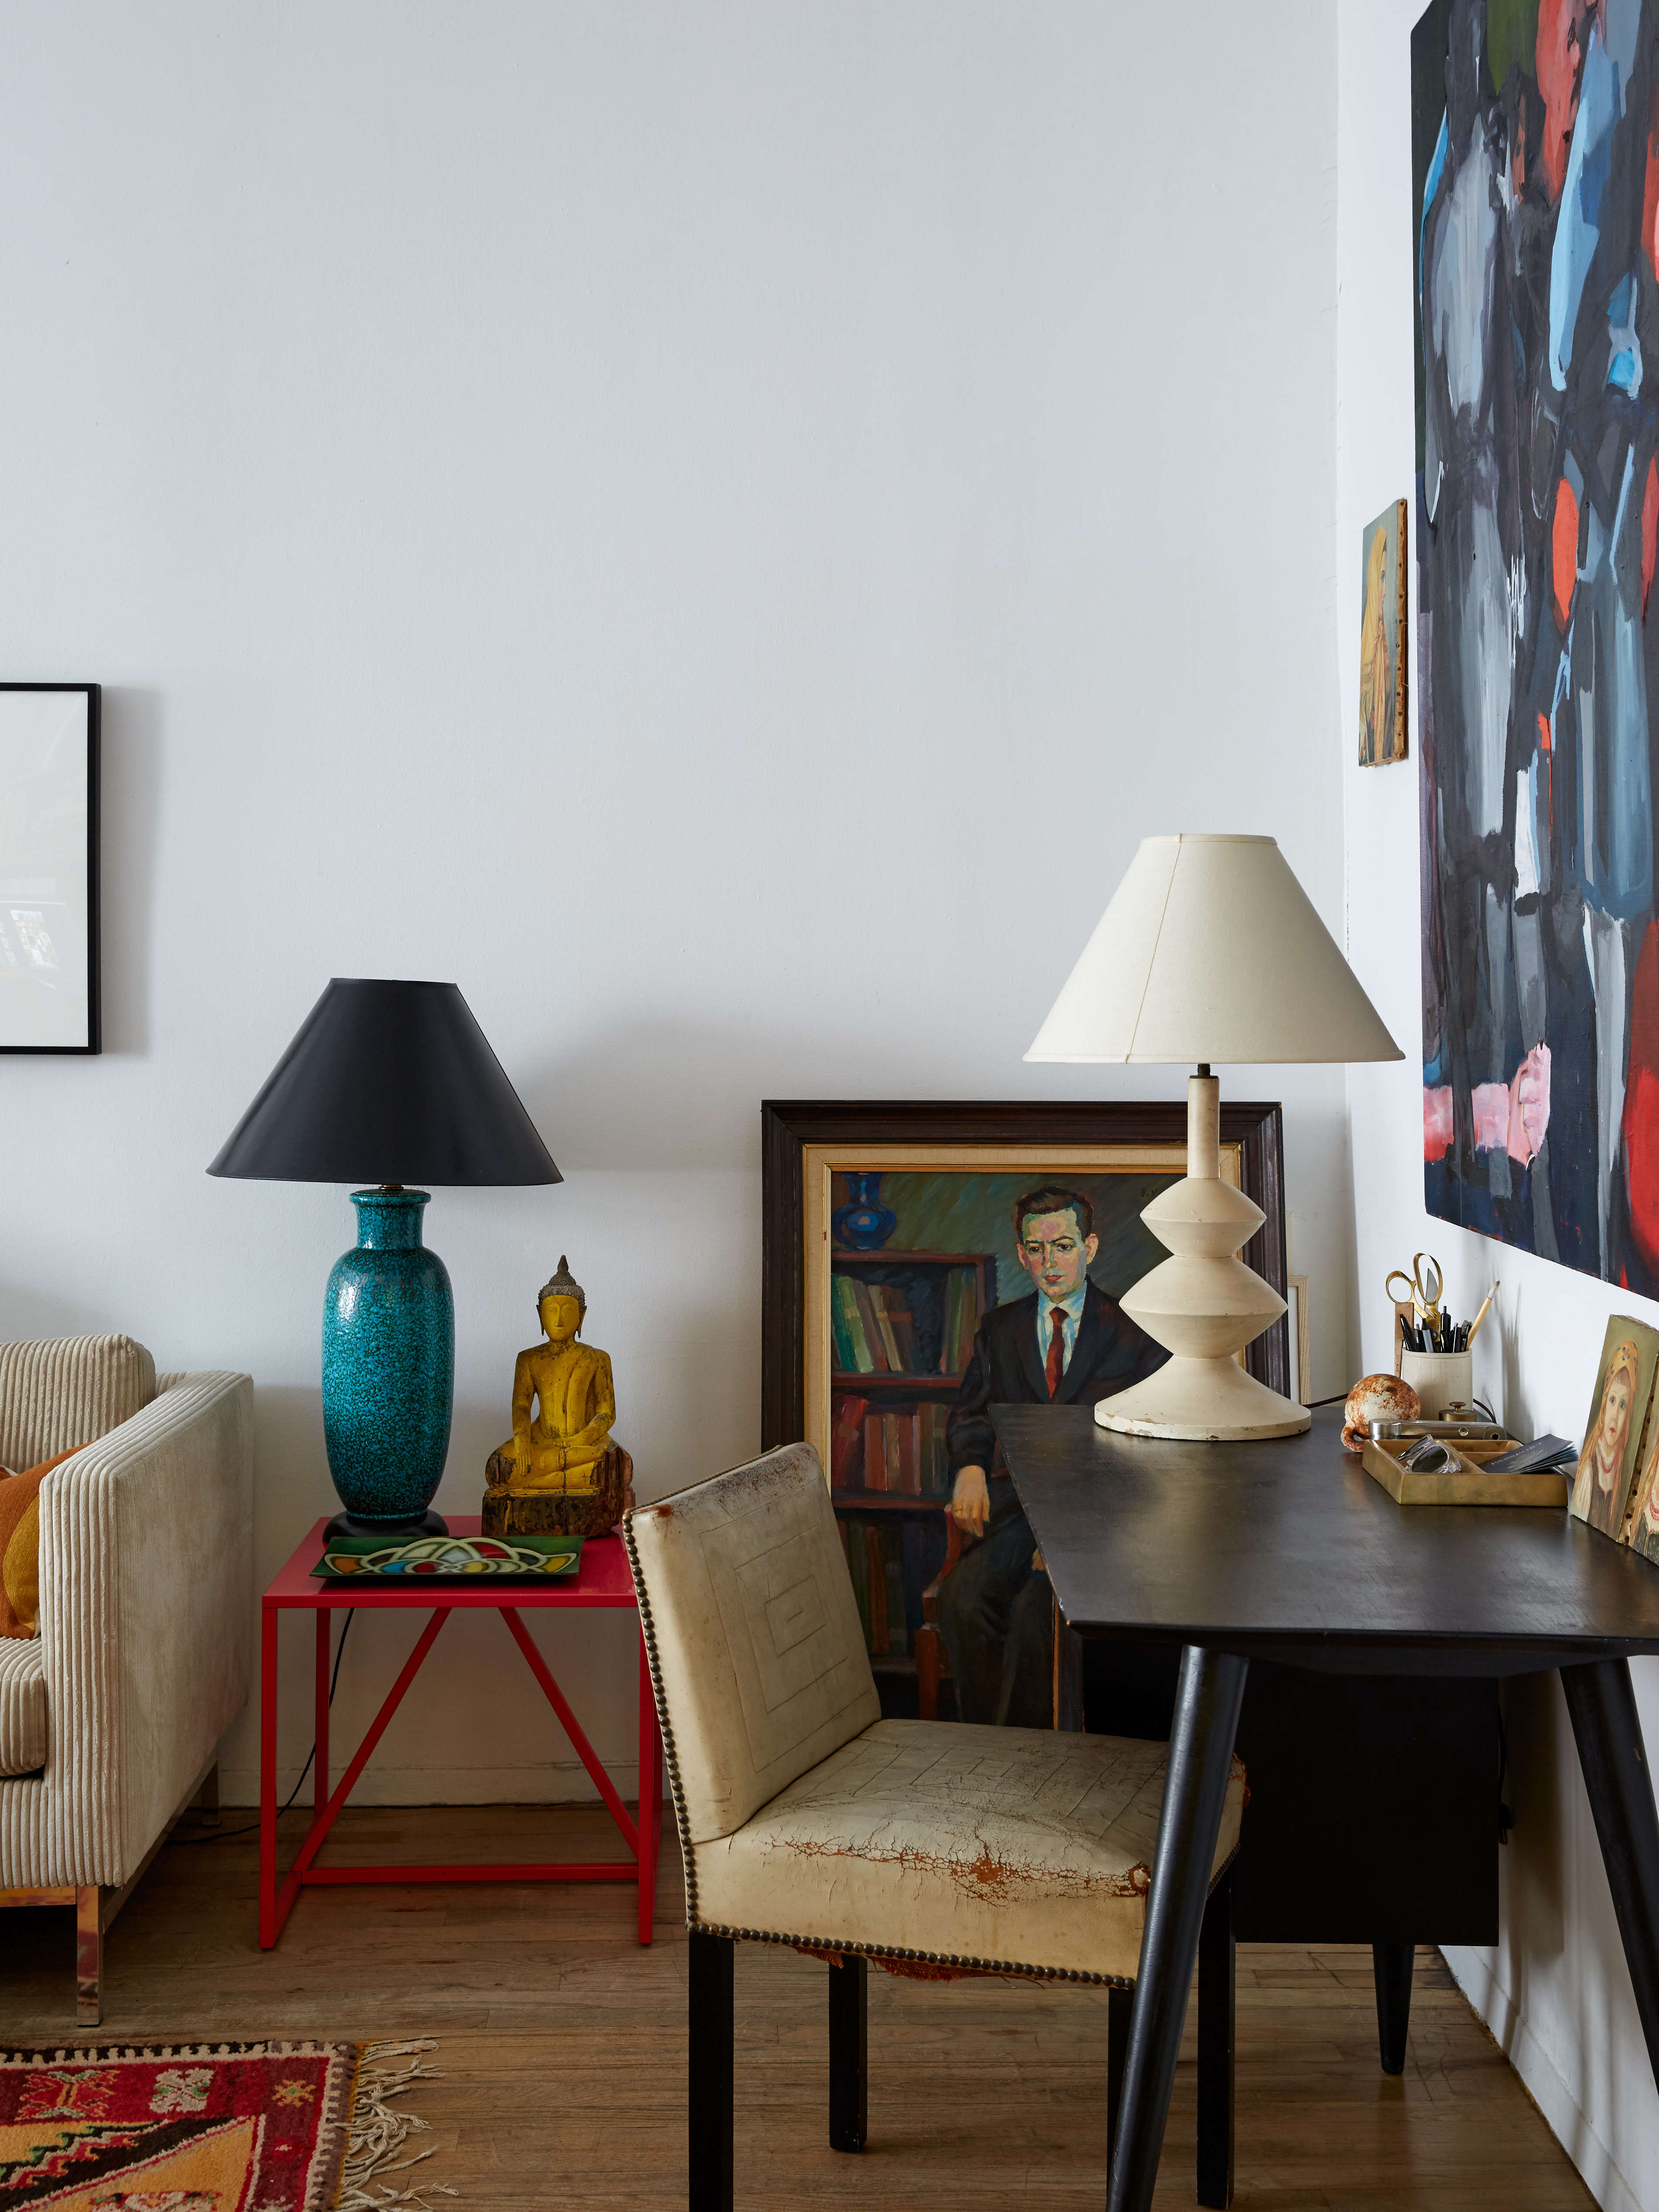 Small Space Solutions 17 Affordable Tips From A NYC